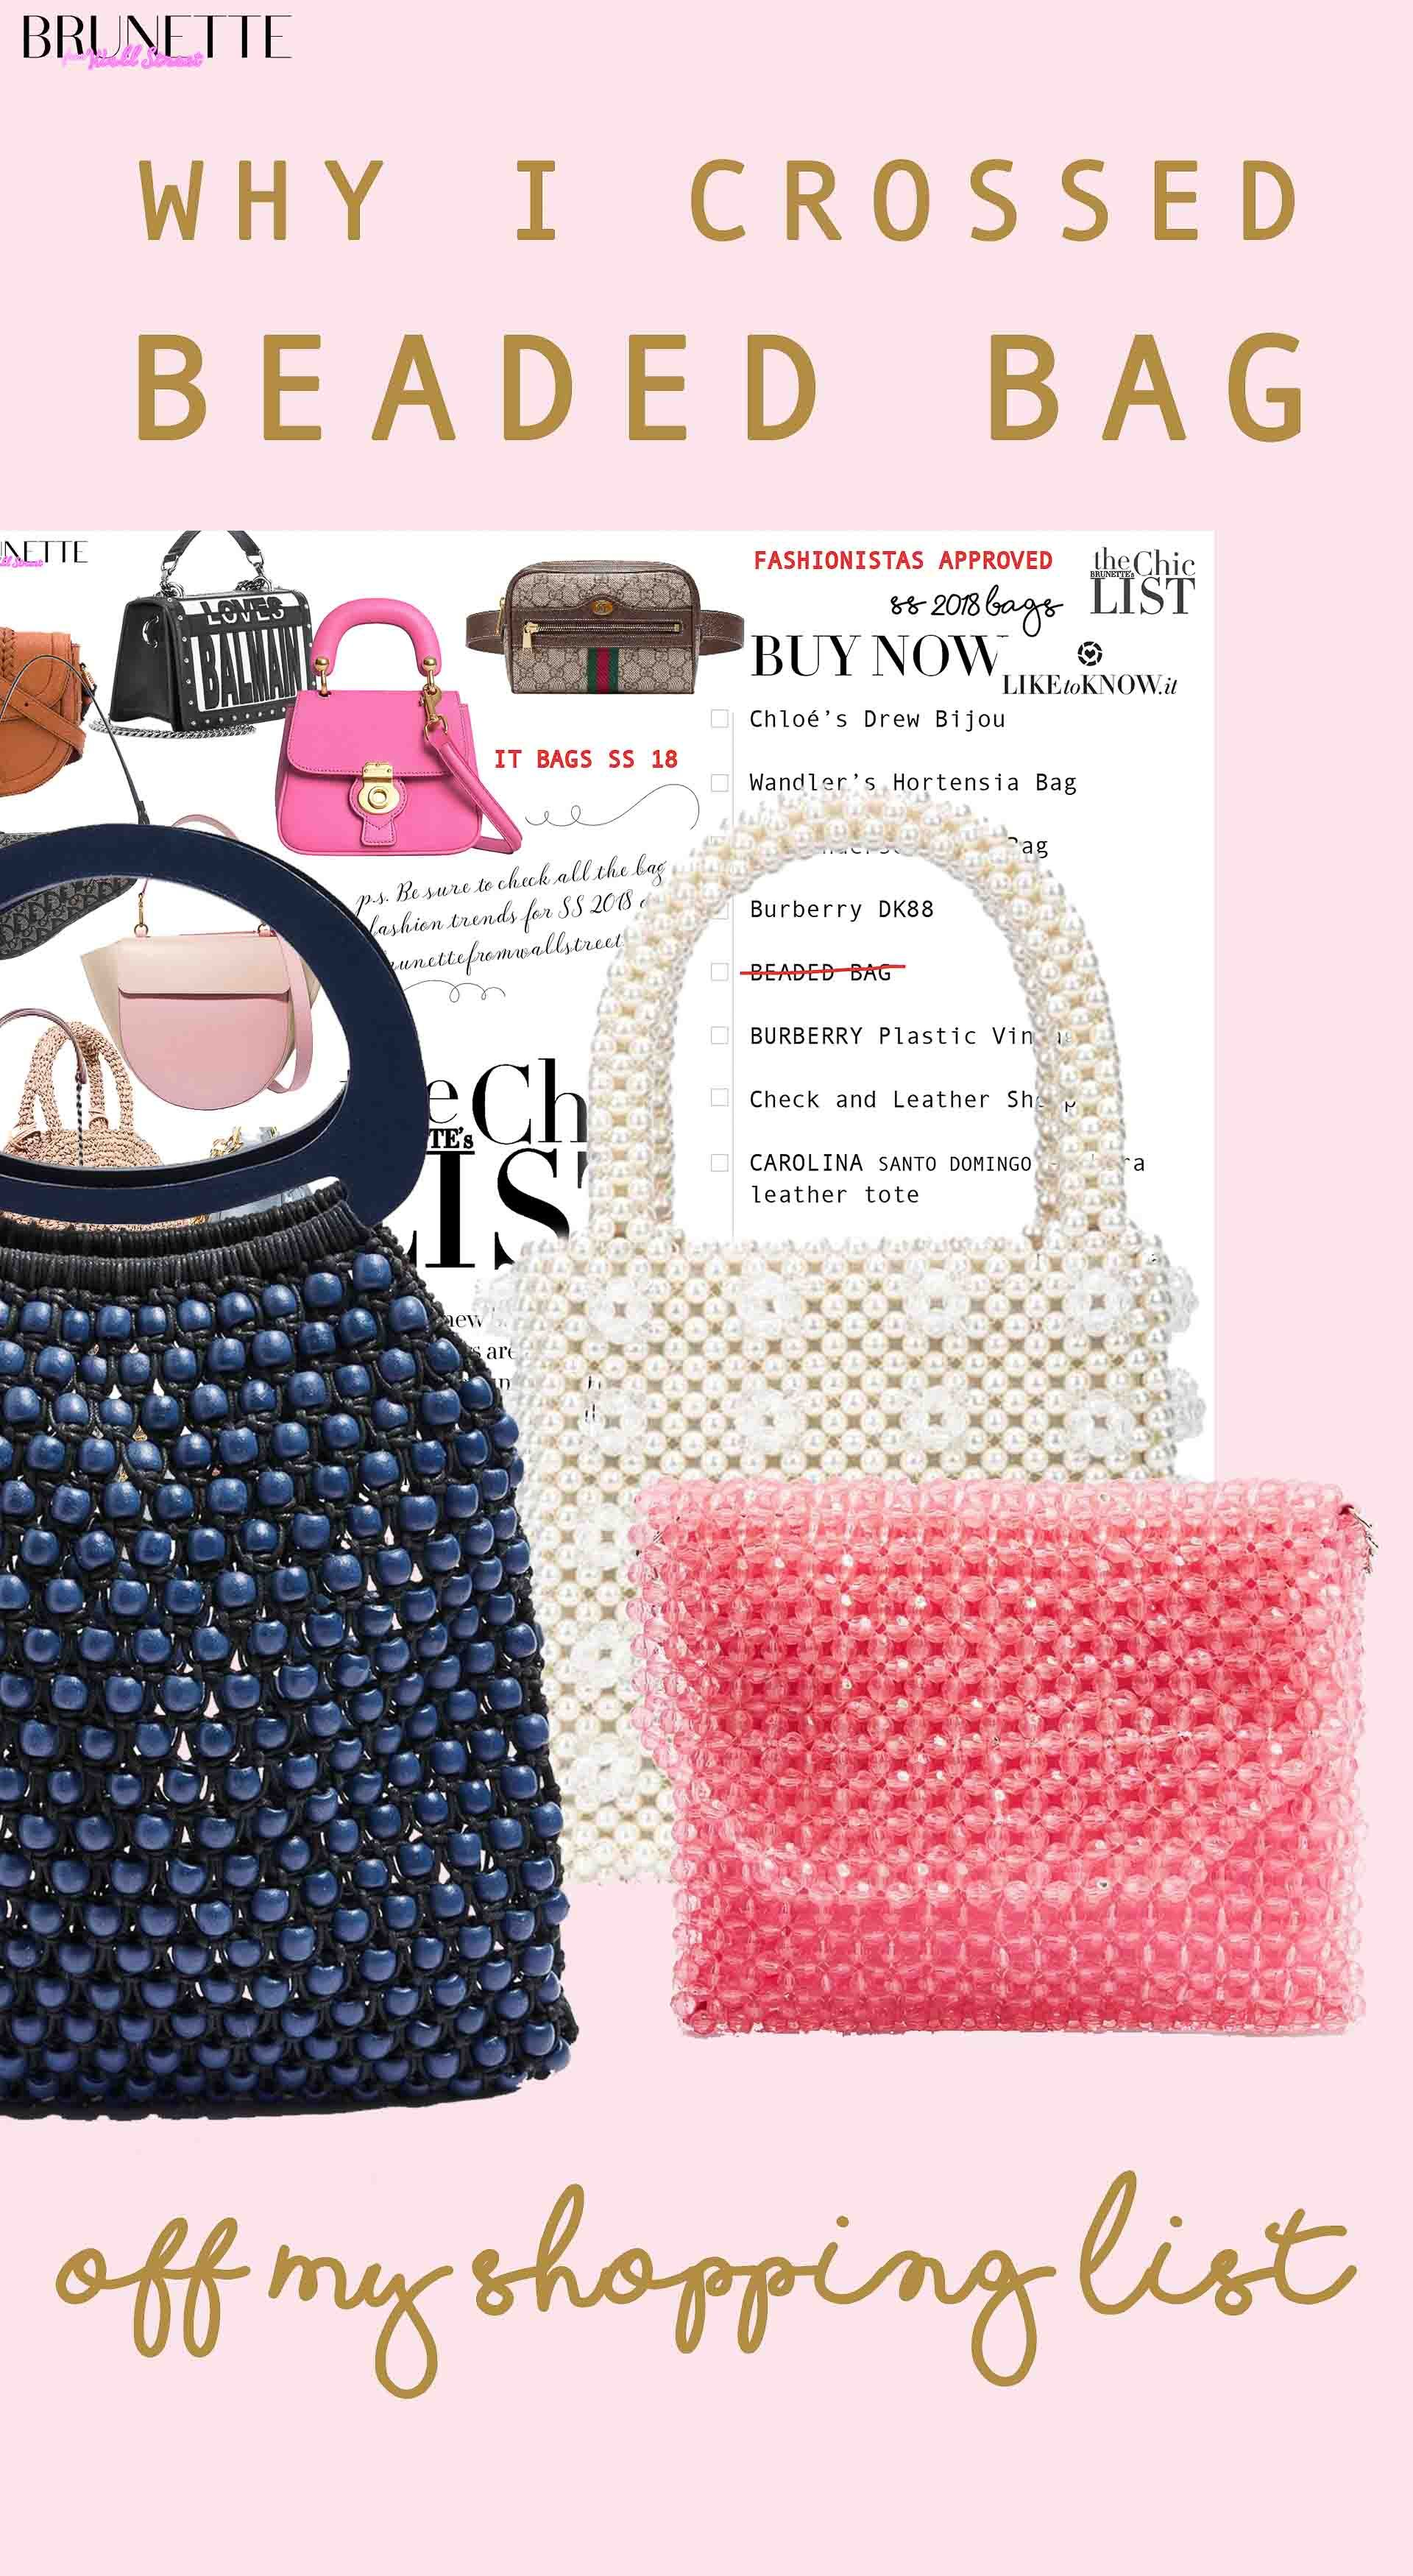 faa1ac7cae35 beaded bags, Toyshop pink beaded bag, transparent beaded bag, blue top  handle beaded bag with text overlay why I crossed beaded bag off my  shopping list